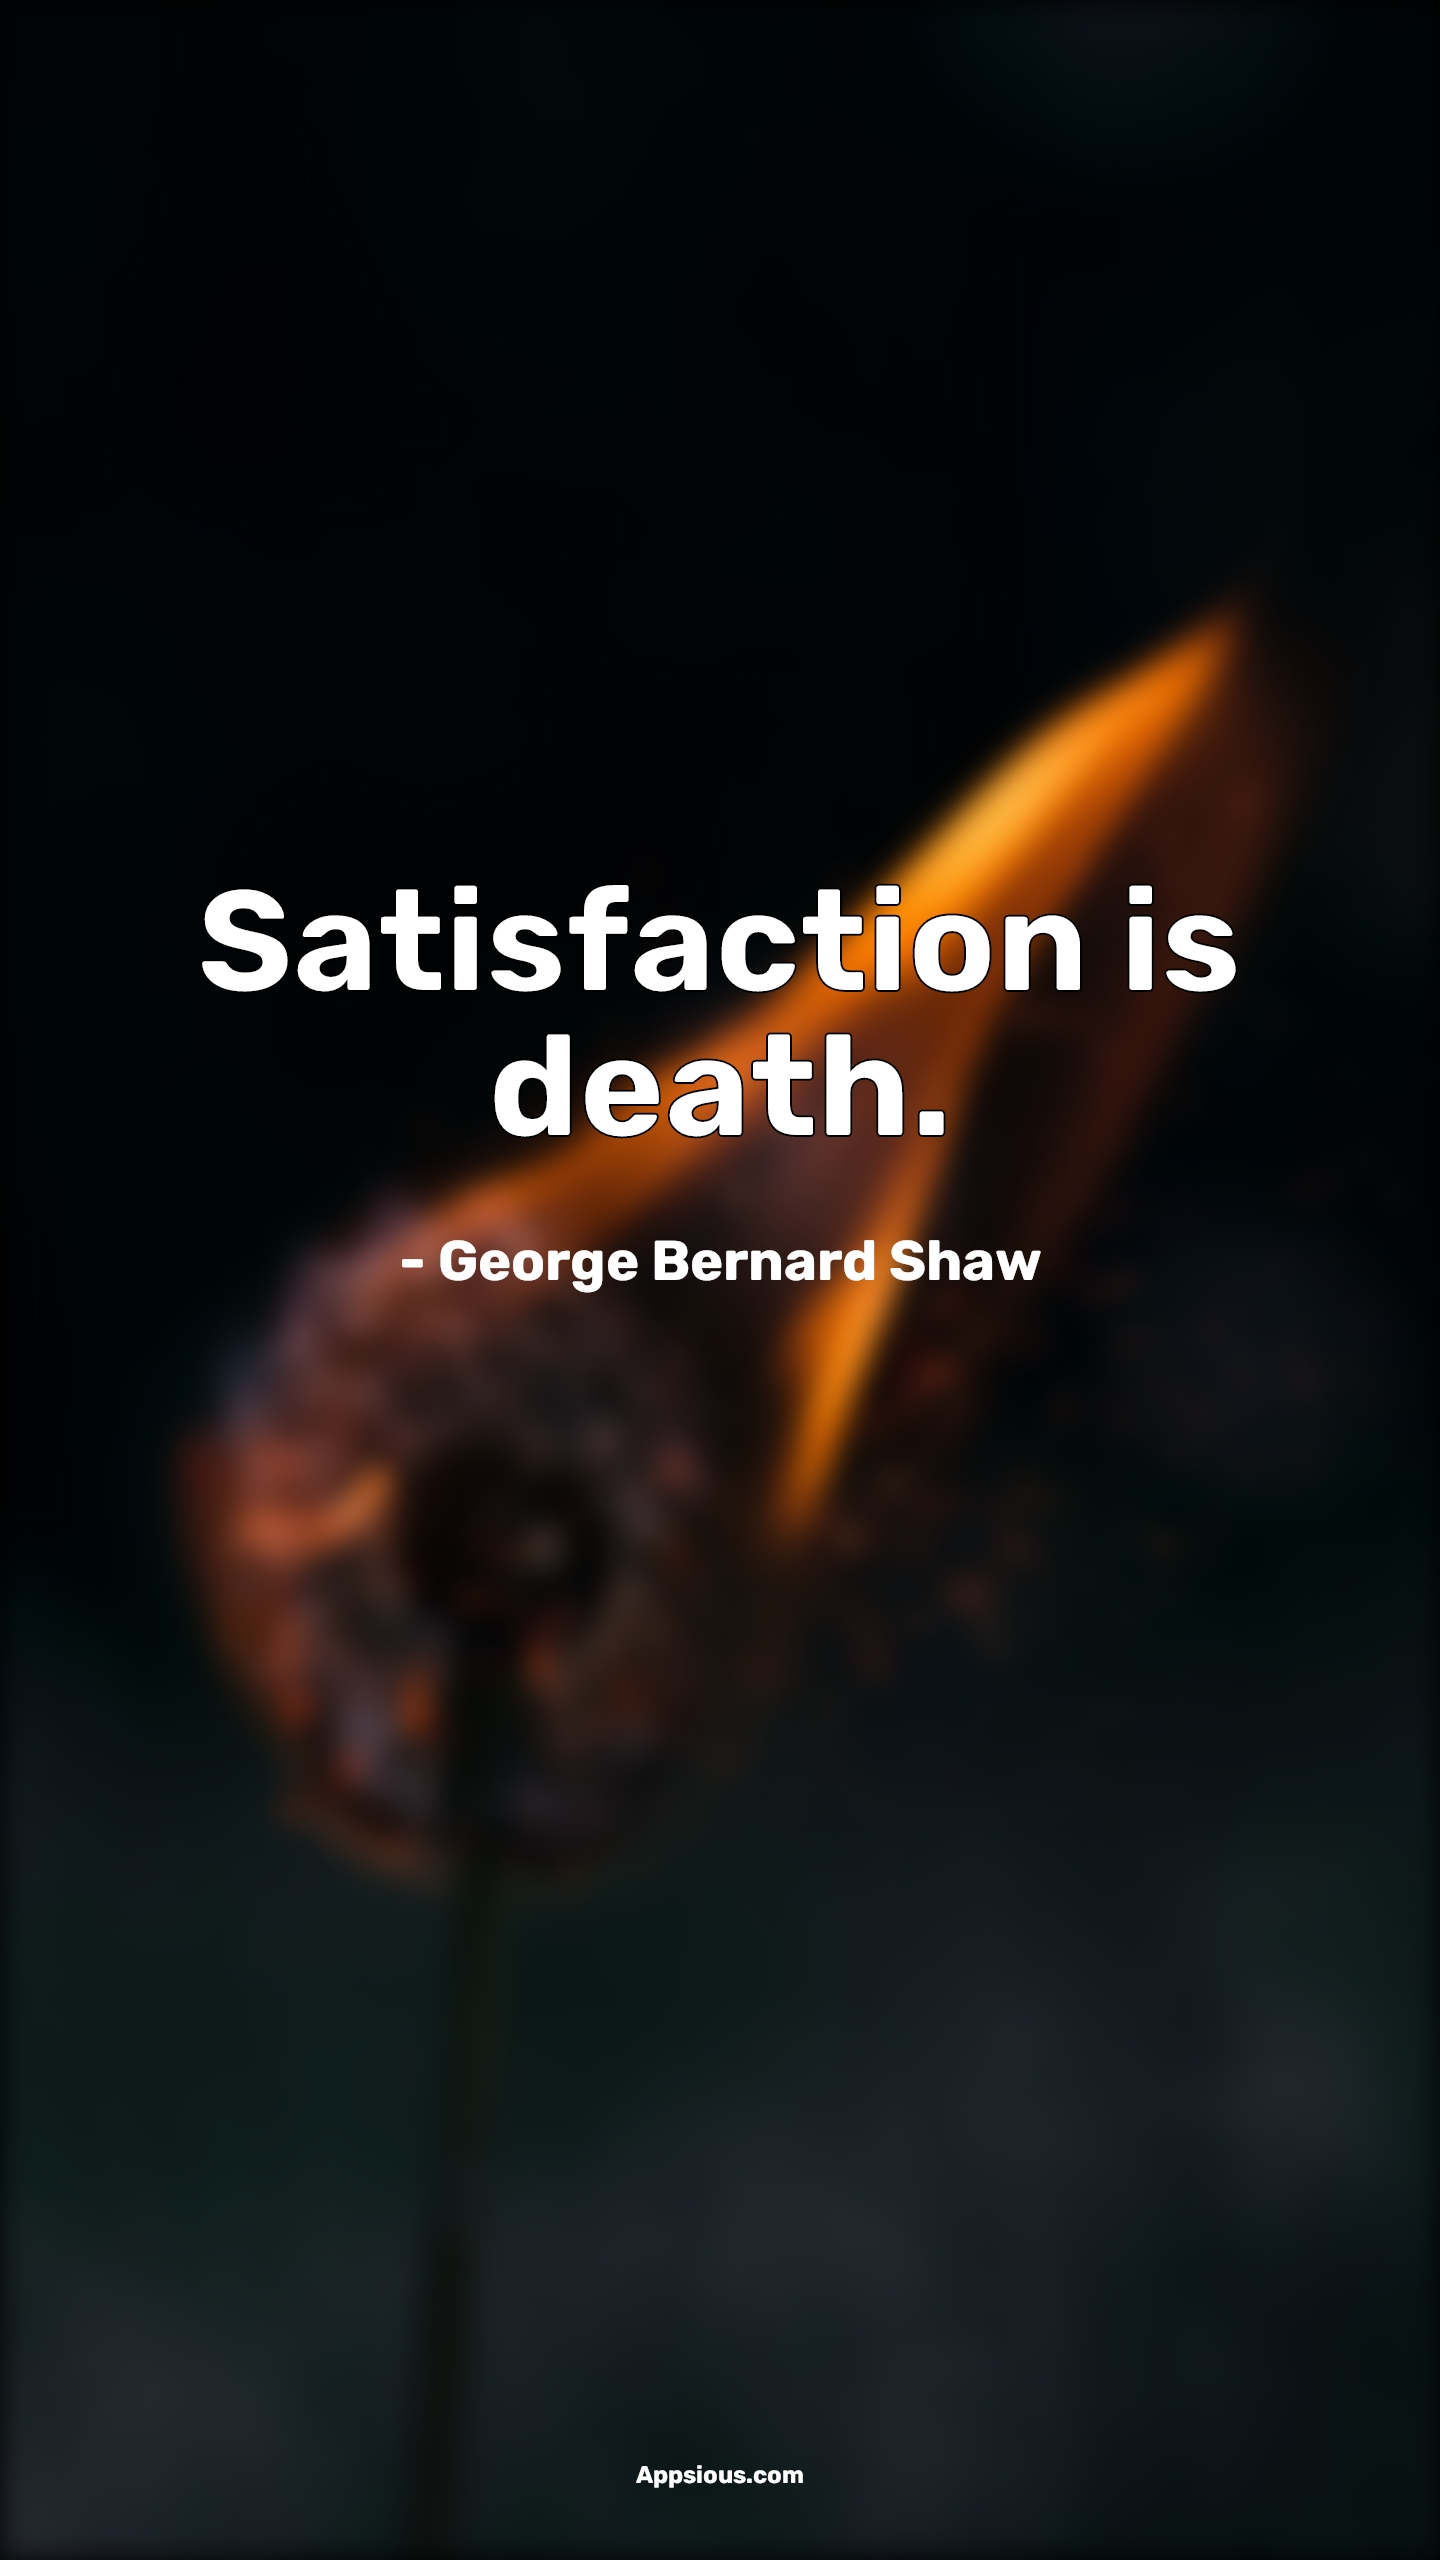 Satisfaction is death.